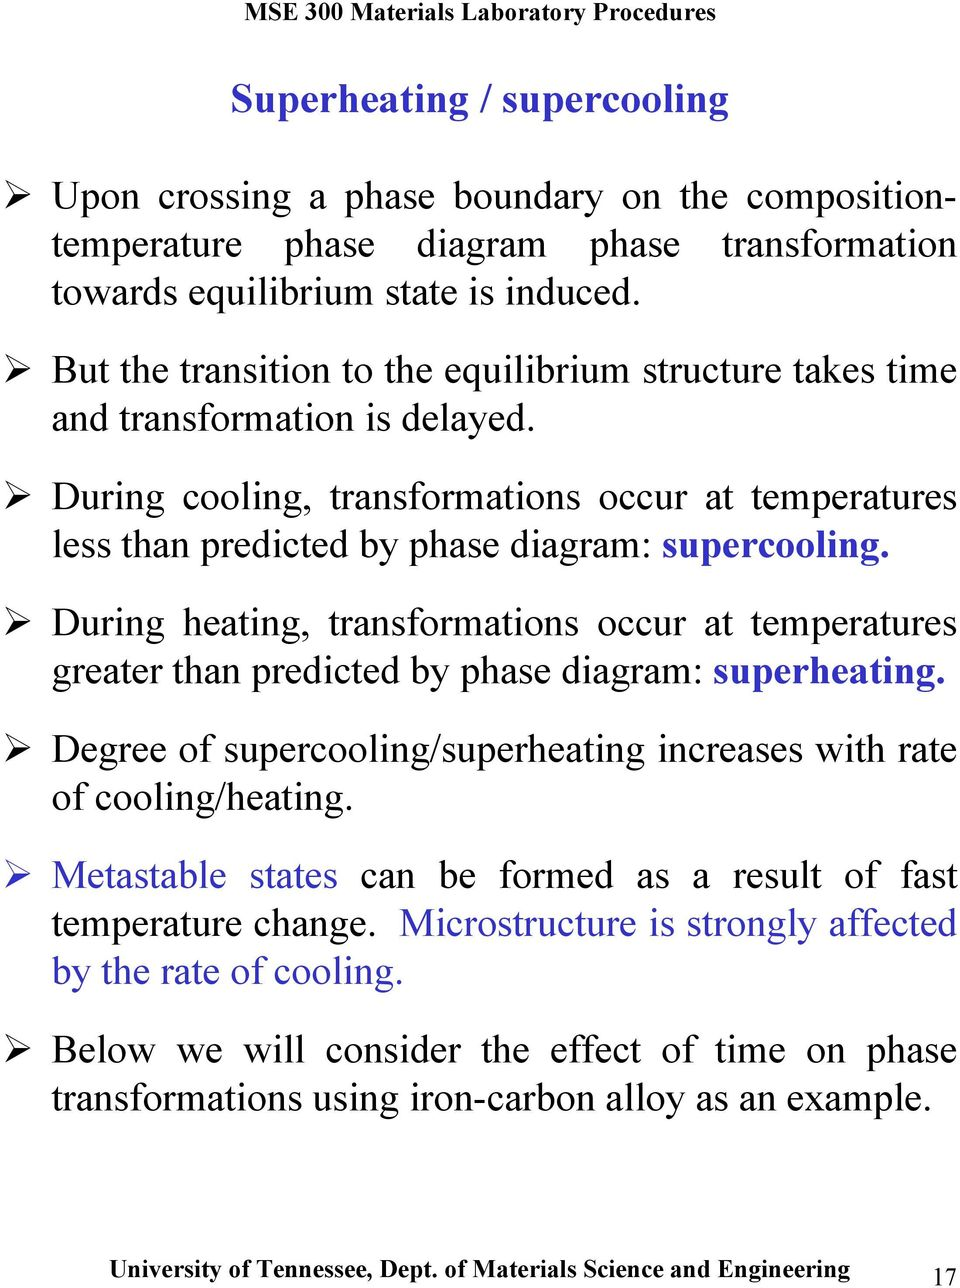 During heating, transformations occur at temperatures greater than predicted by phase diagram: superheating. Degree of supercooling/superheating increases with rate of cooling/heating.